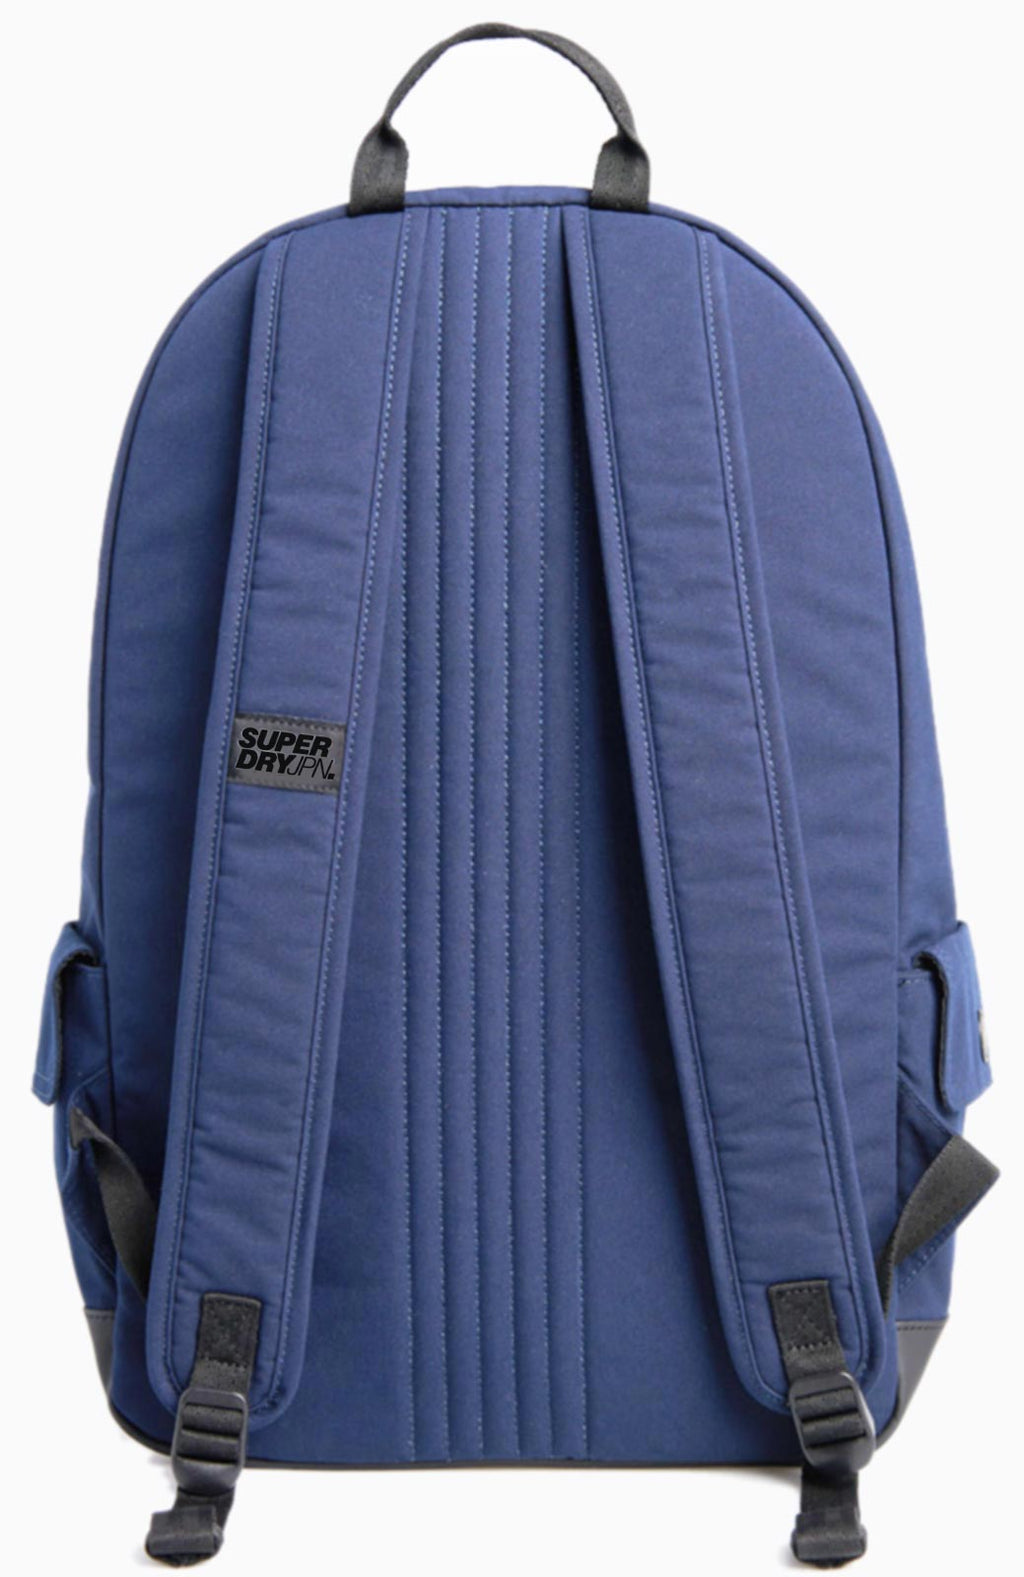 Superdry Cuba Montana Backpack Bag	Navy